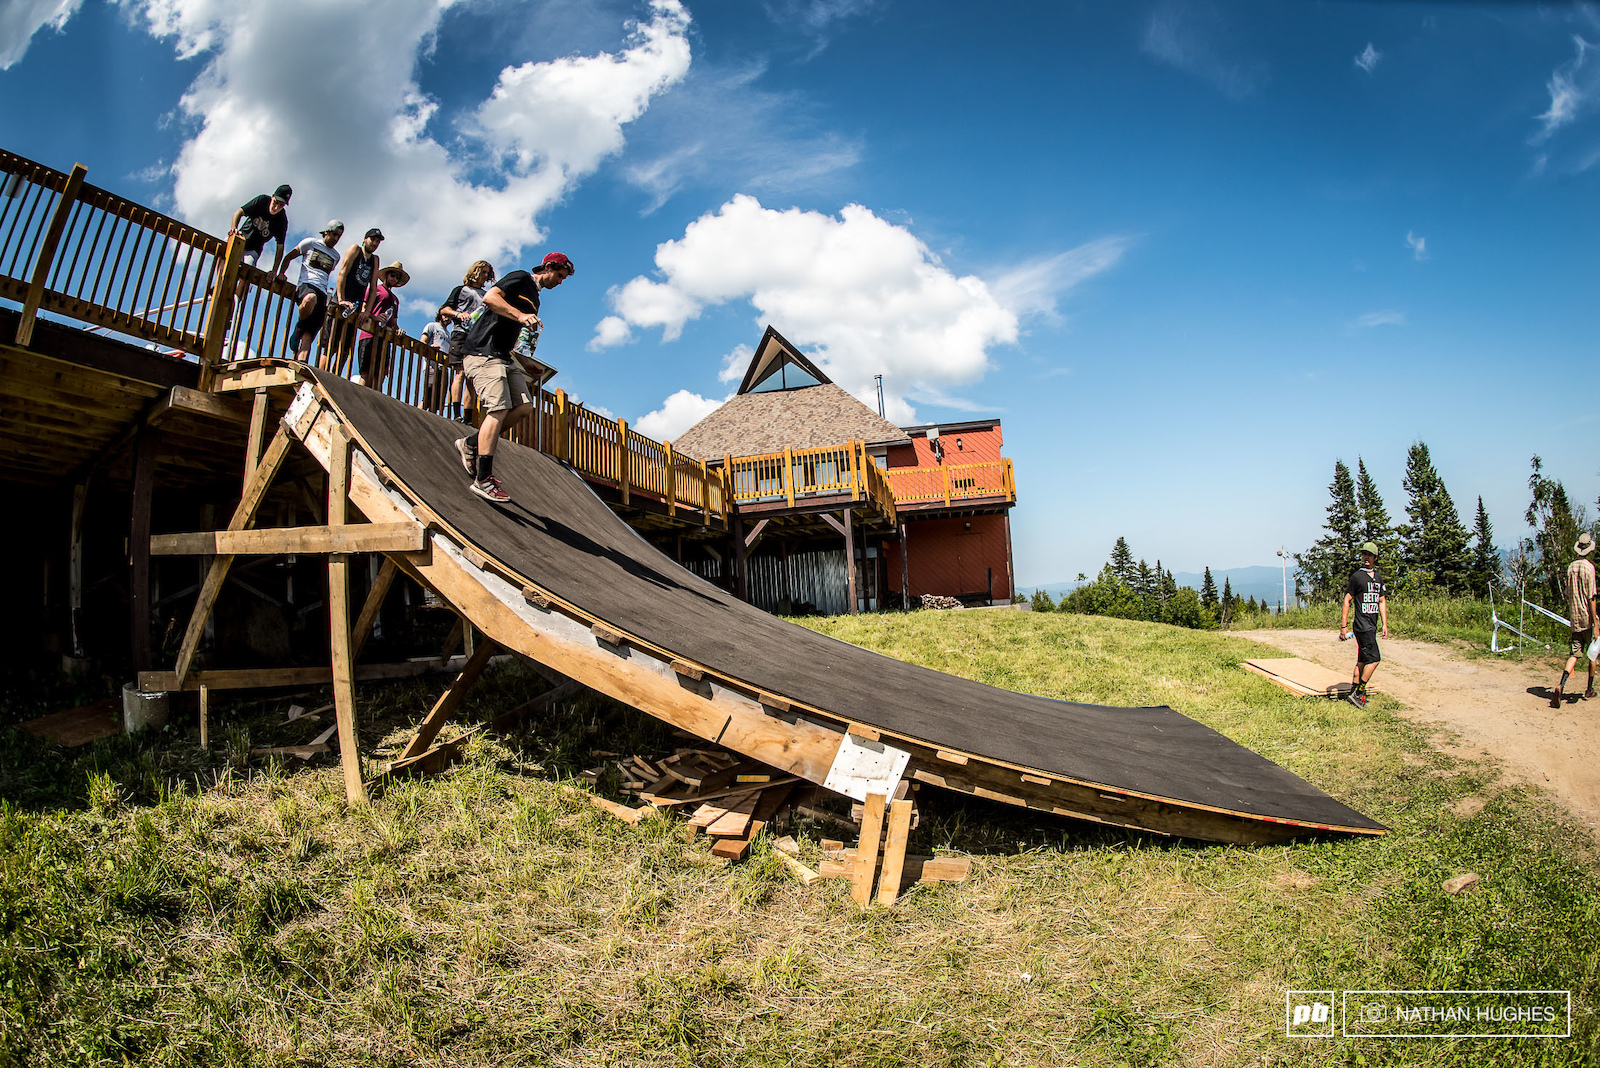 A short steep ramp brings riders down from the decking onto the fire road. A pre-jump is probably about the only way to avoid a harsh huck to flat.